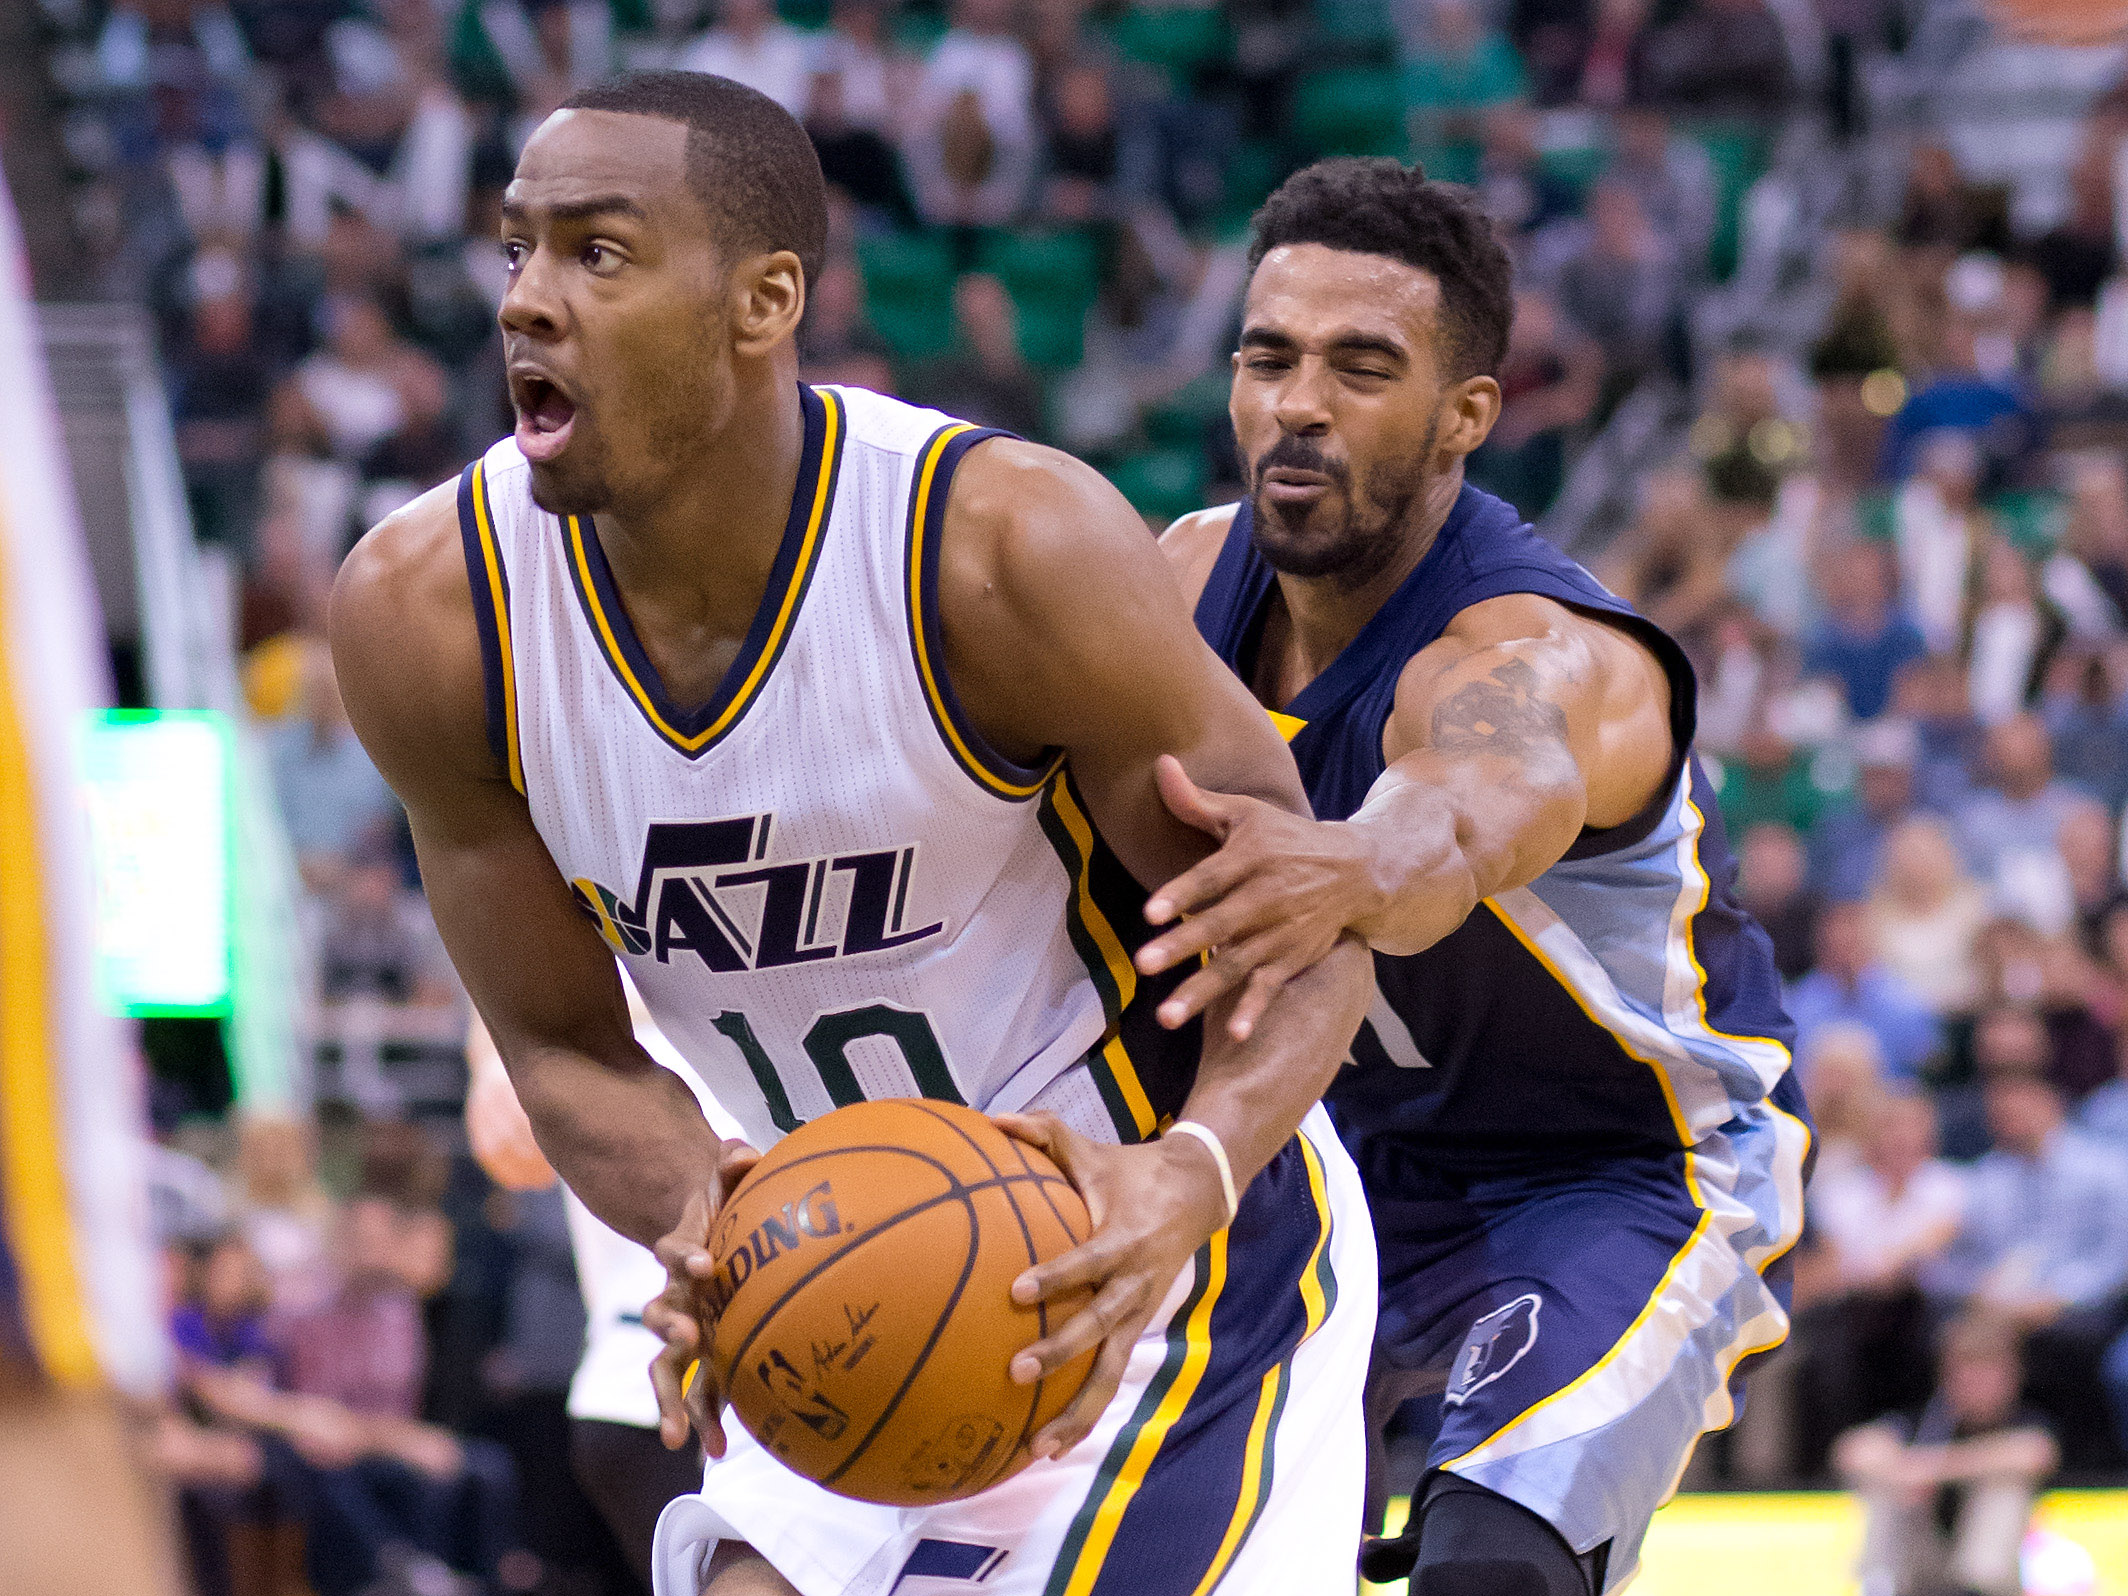 Utah Jazz: Will Alec Burks Be the New Backup Point Guard?